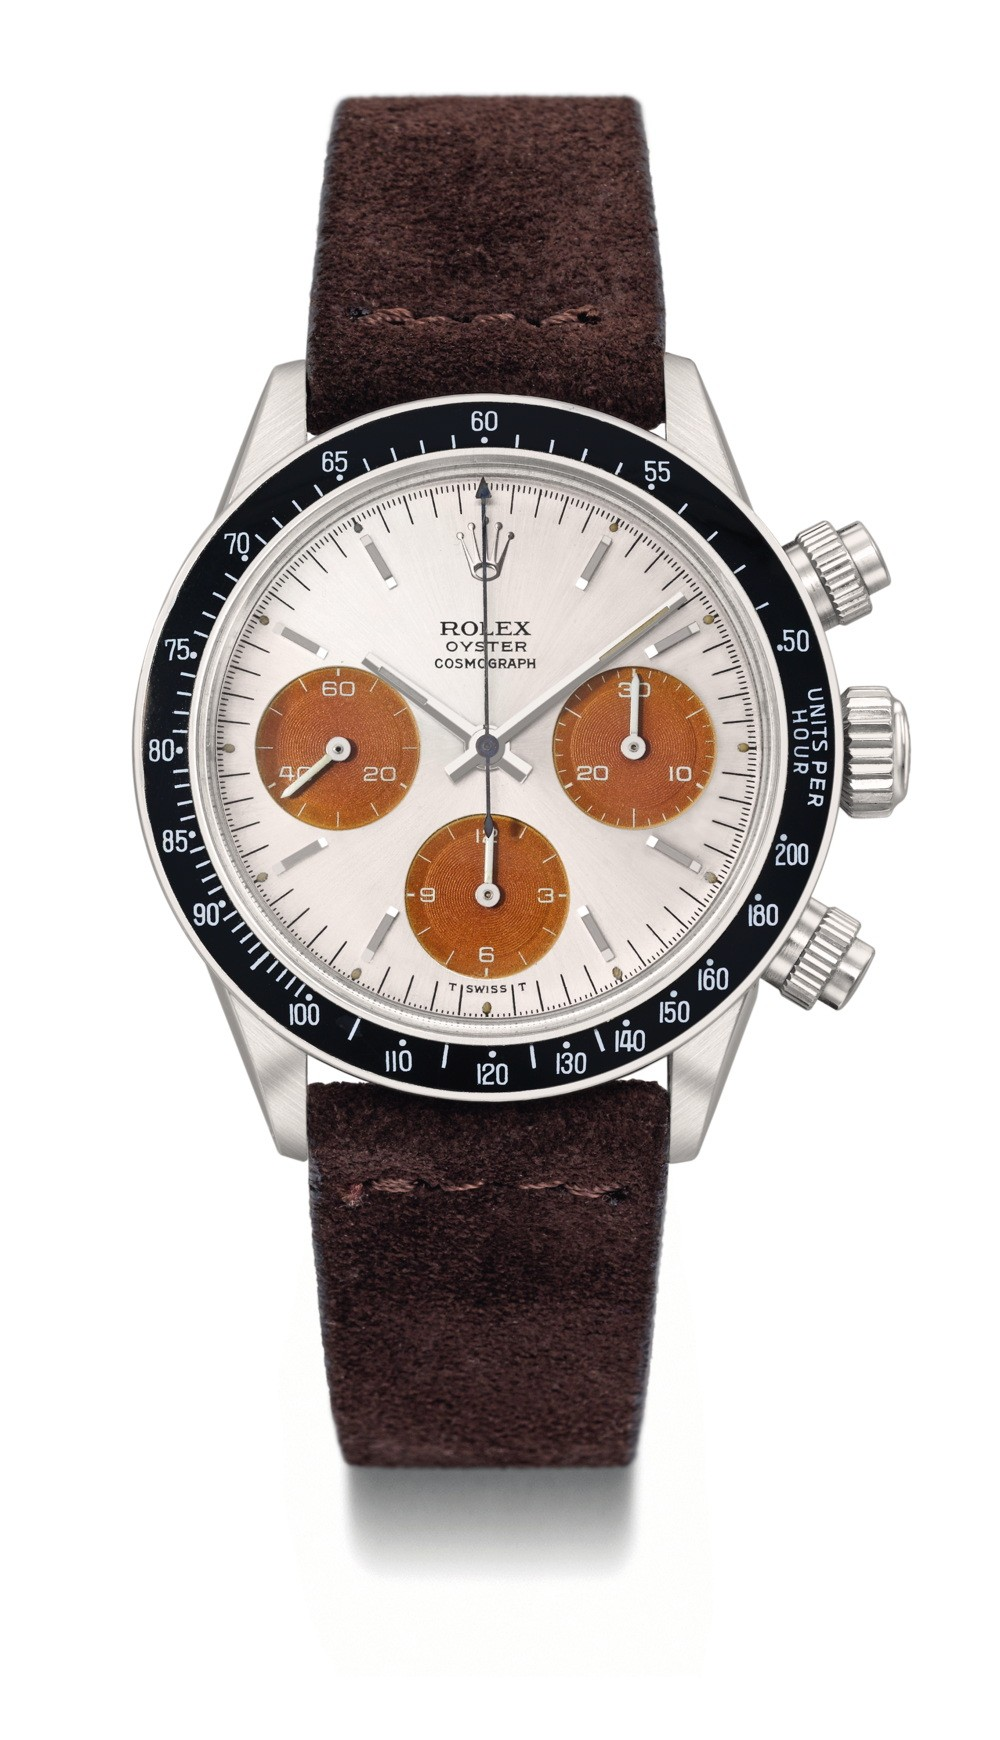 50 rolex daytona christie 39 s auction rolex passion report. Black Bedroom Furniture Sets. Home Design Ideas